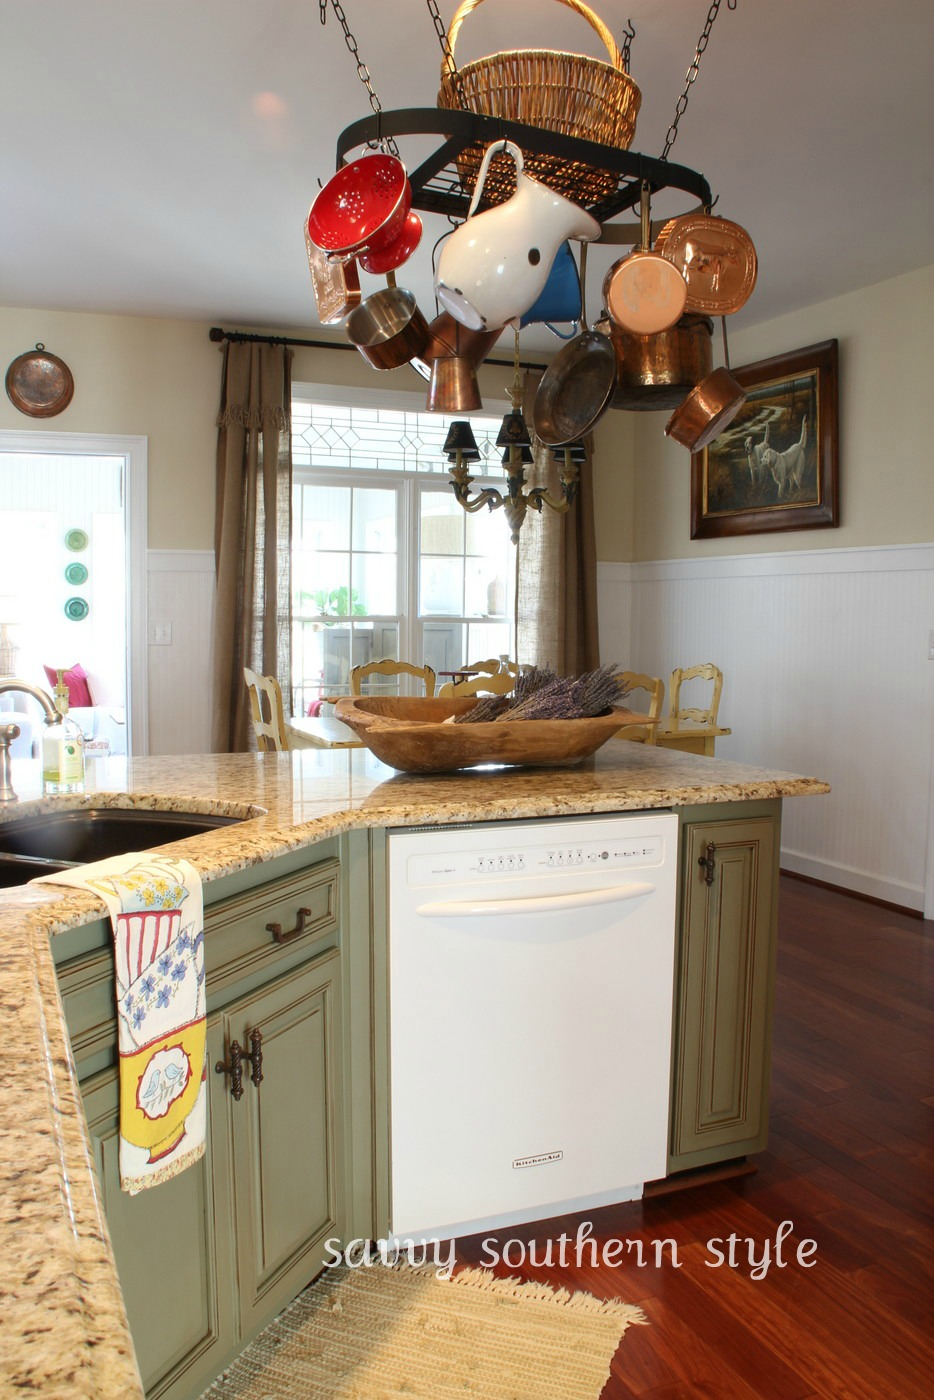 Savvy southern style the kitchen project reveal for Southern style kitchen design